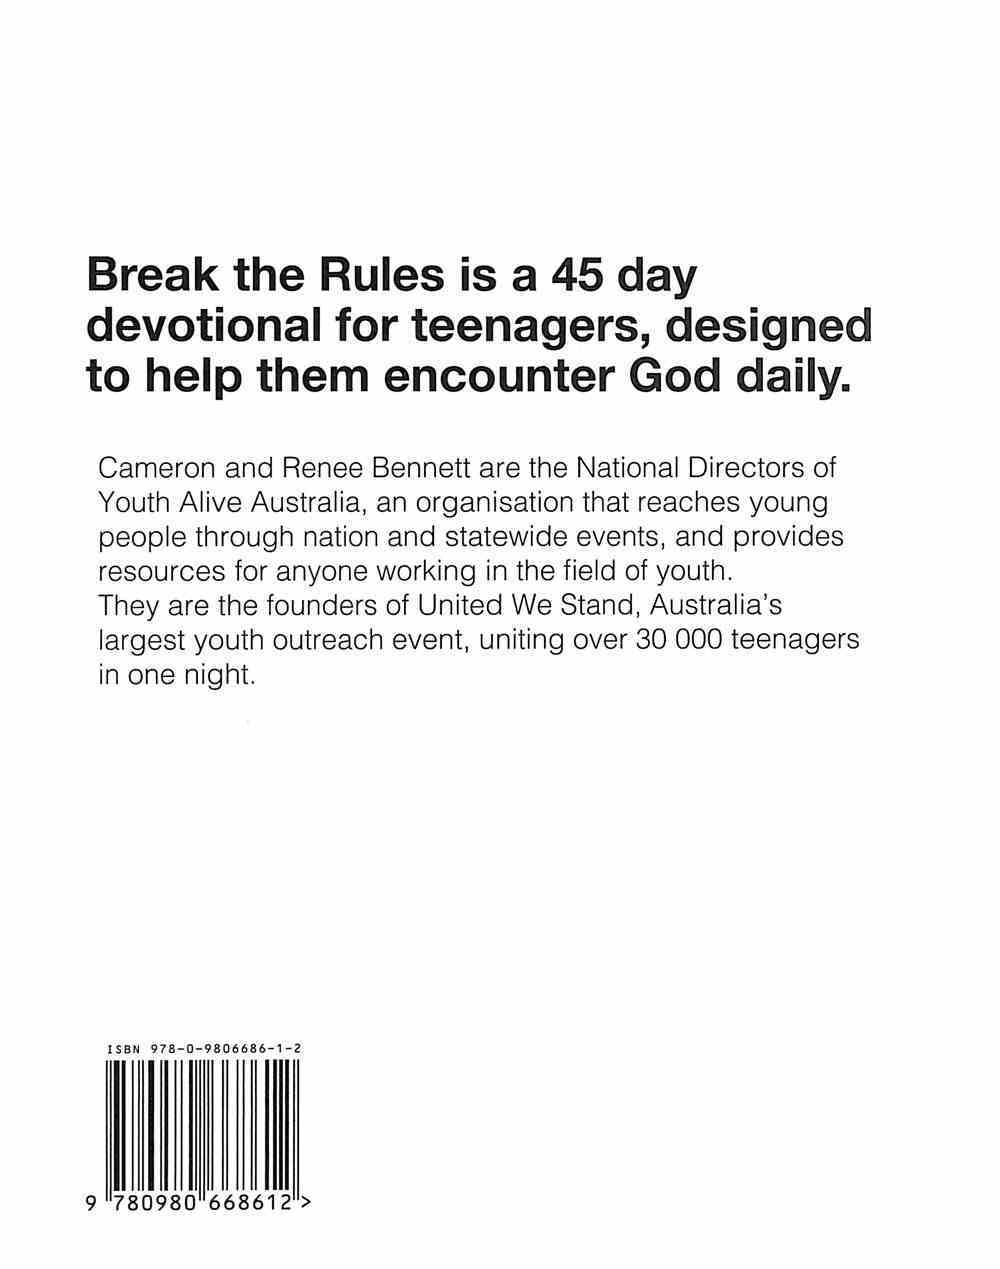 Break the Rules: A 45 Day Devotional Hardback